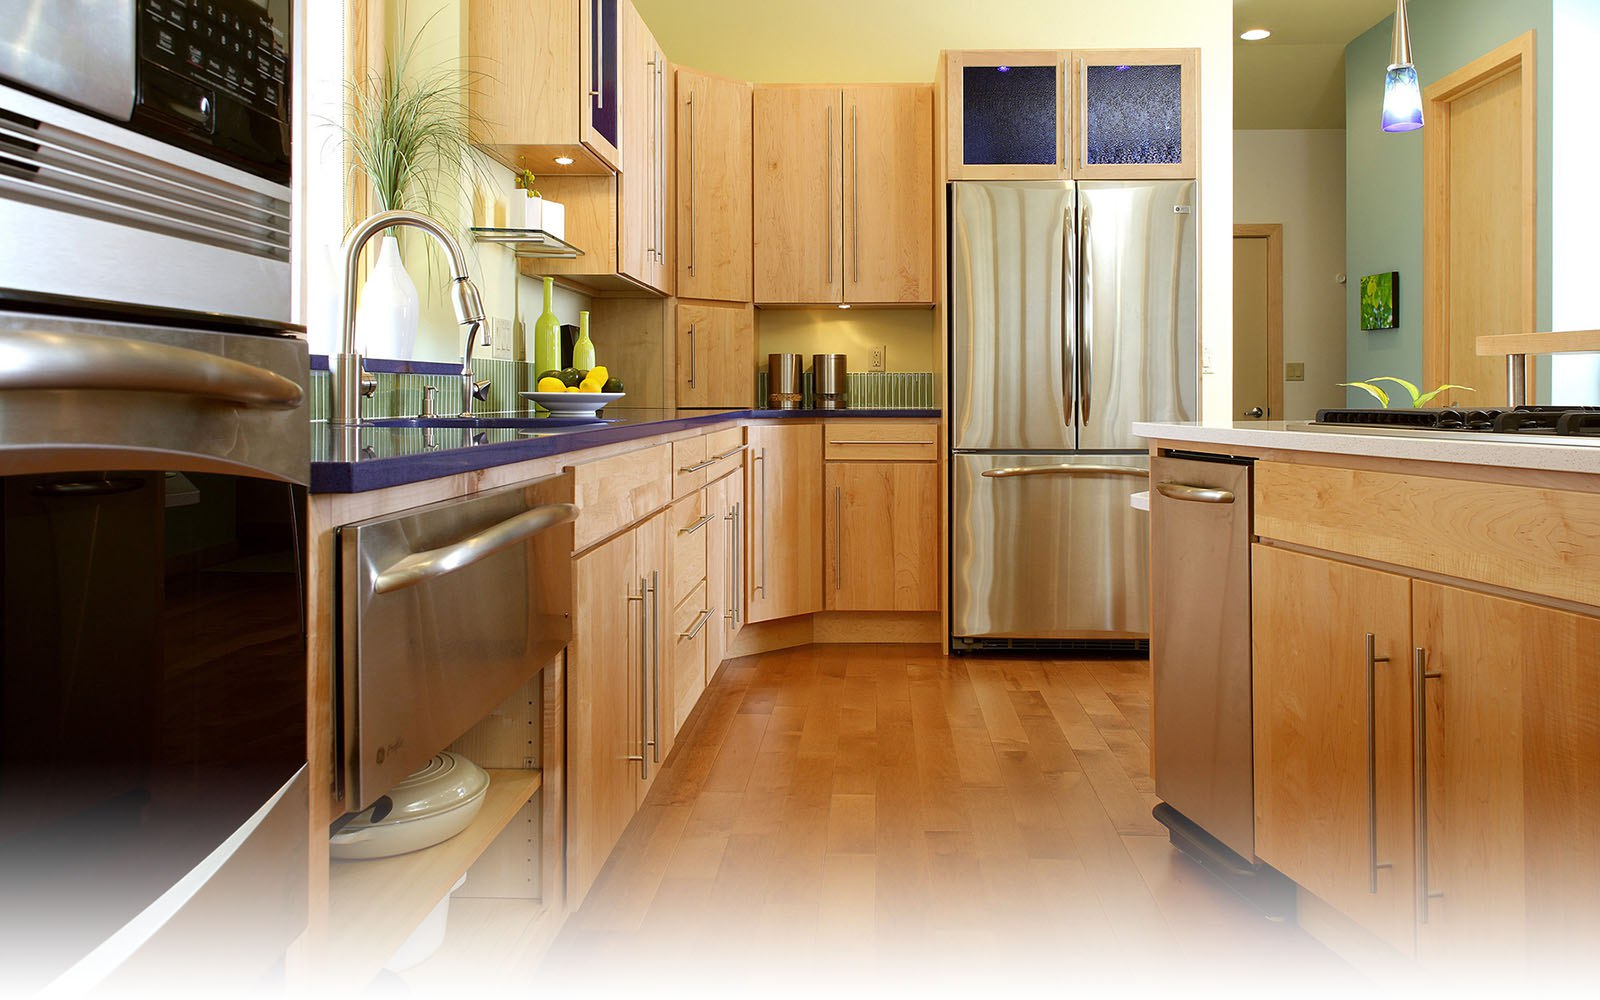 kitchen and bath cabinets, design and remodeling - norfolk kitchen